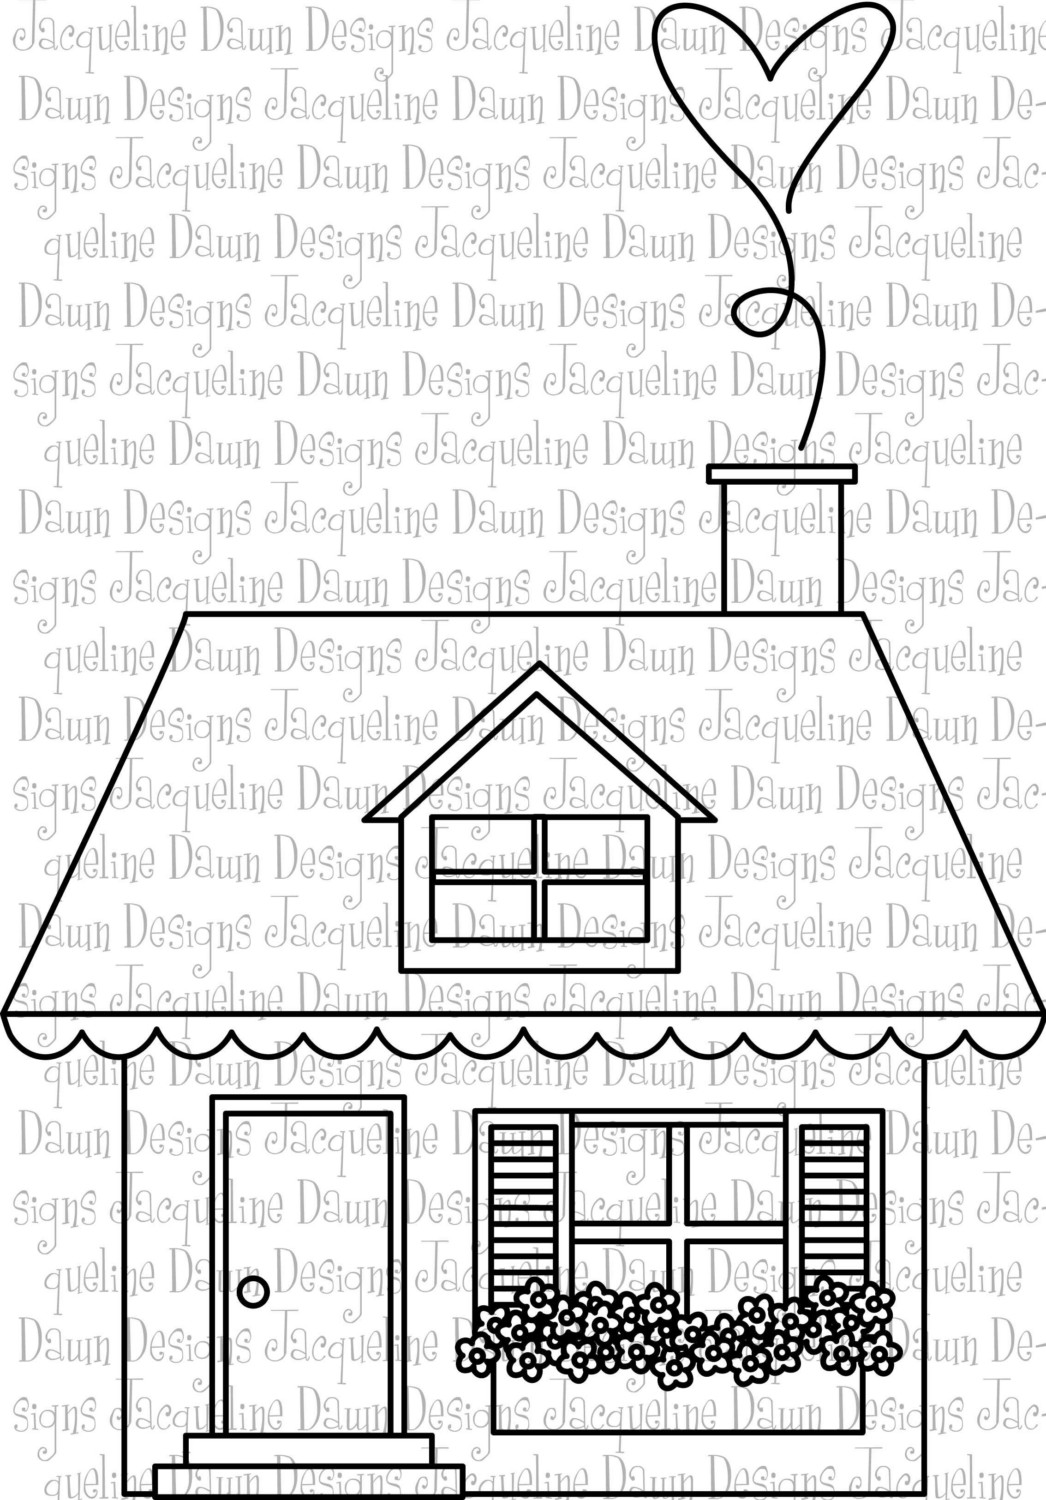 Home sweet home clipart black and white clip art free Home sweet home clipart black and white - ClipartFest clip art free